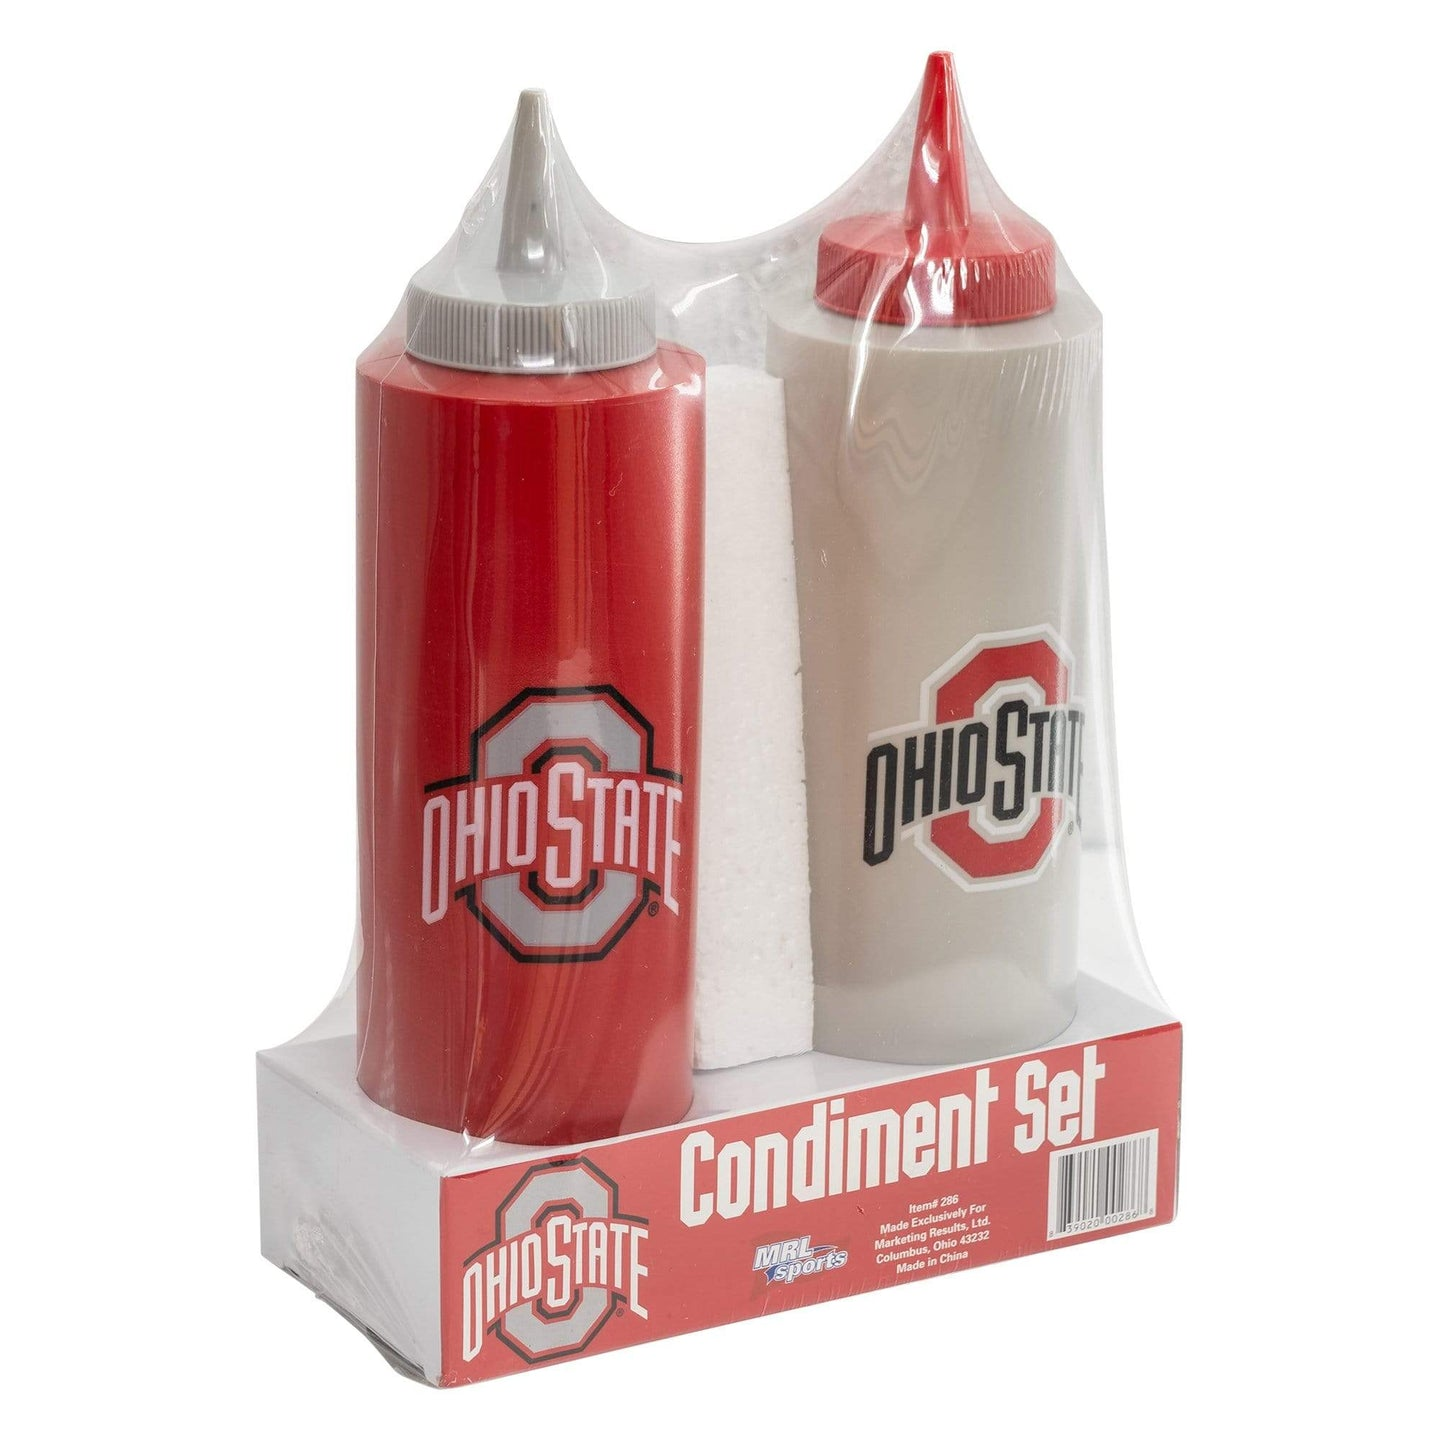 Ohio State Scarlet and Gray Condiment Set